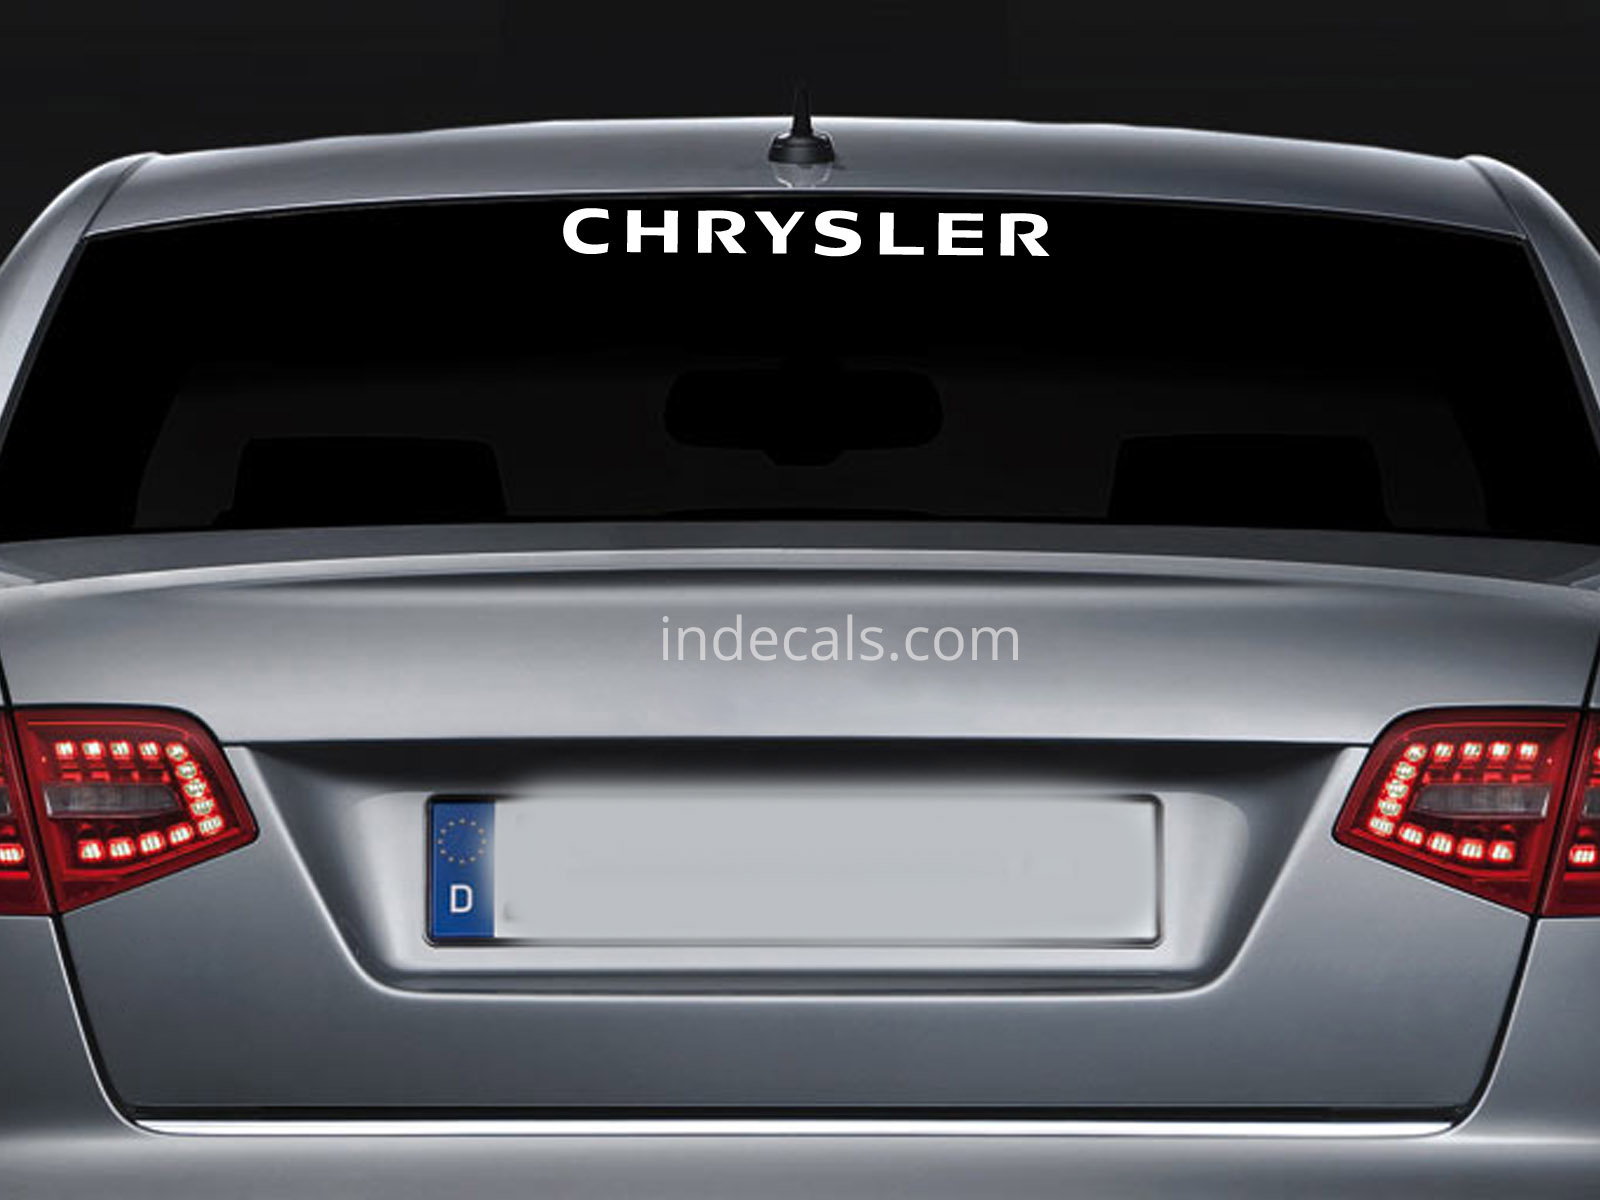 1 x Chrysler Sticker for Windshield or Back Window - White